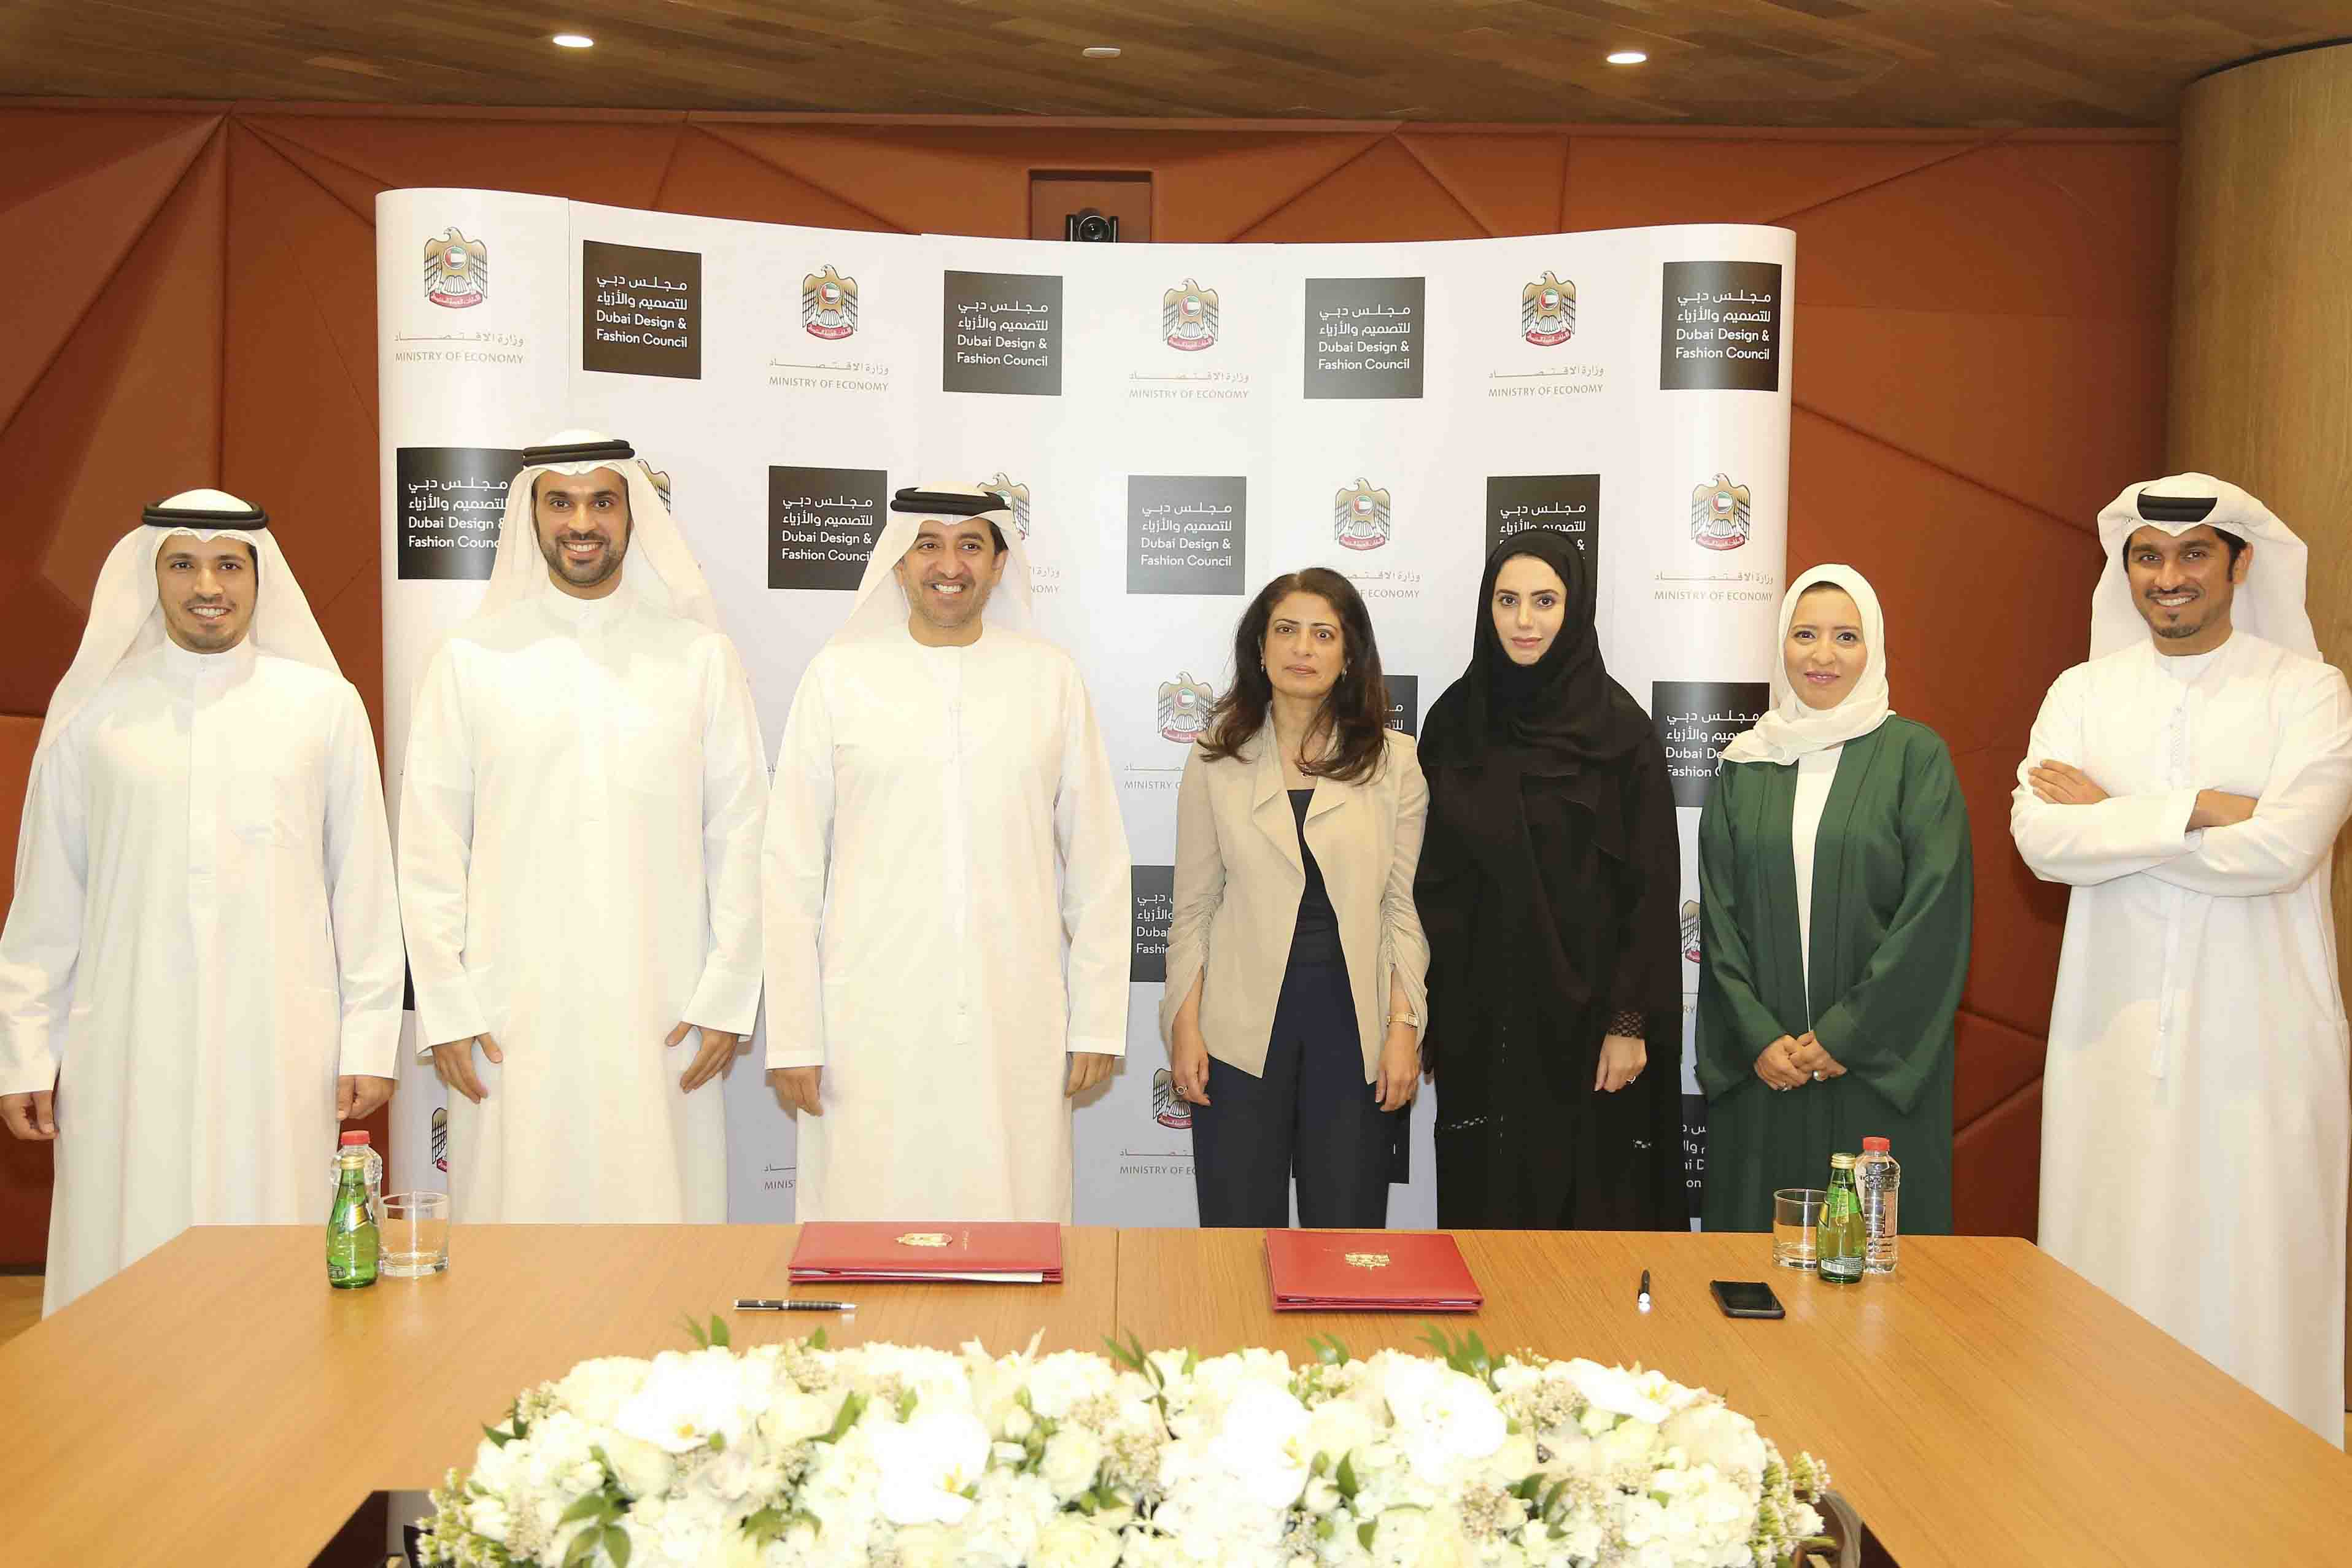 Dubai Design and Fashion Council signs MoU with The Ministry of Economy for the Protection of Intellectual Property Rights